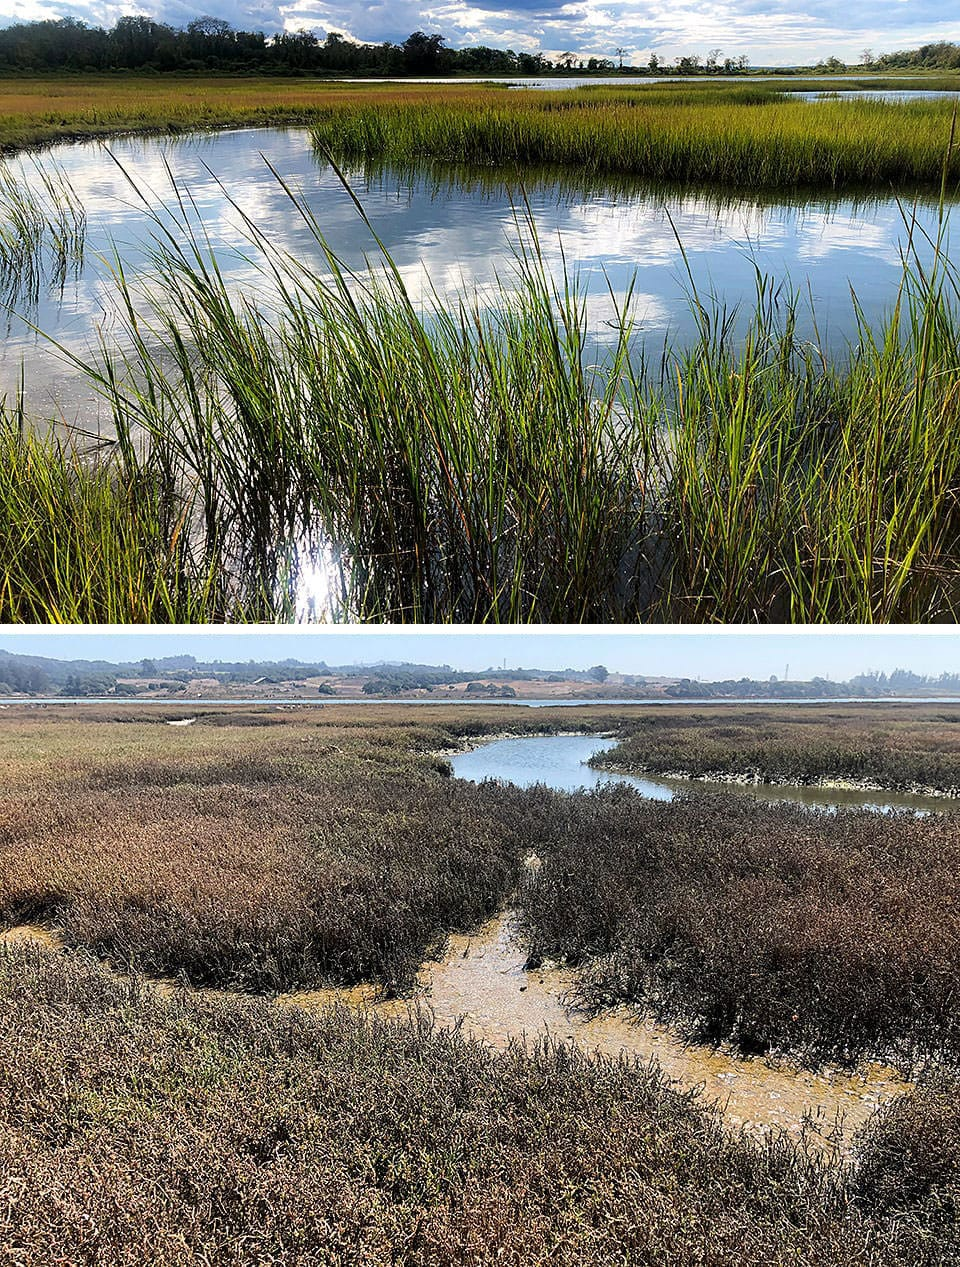 two marshes; while both marshes are not healthy, one looks so and the other looks very green and healthy.